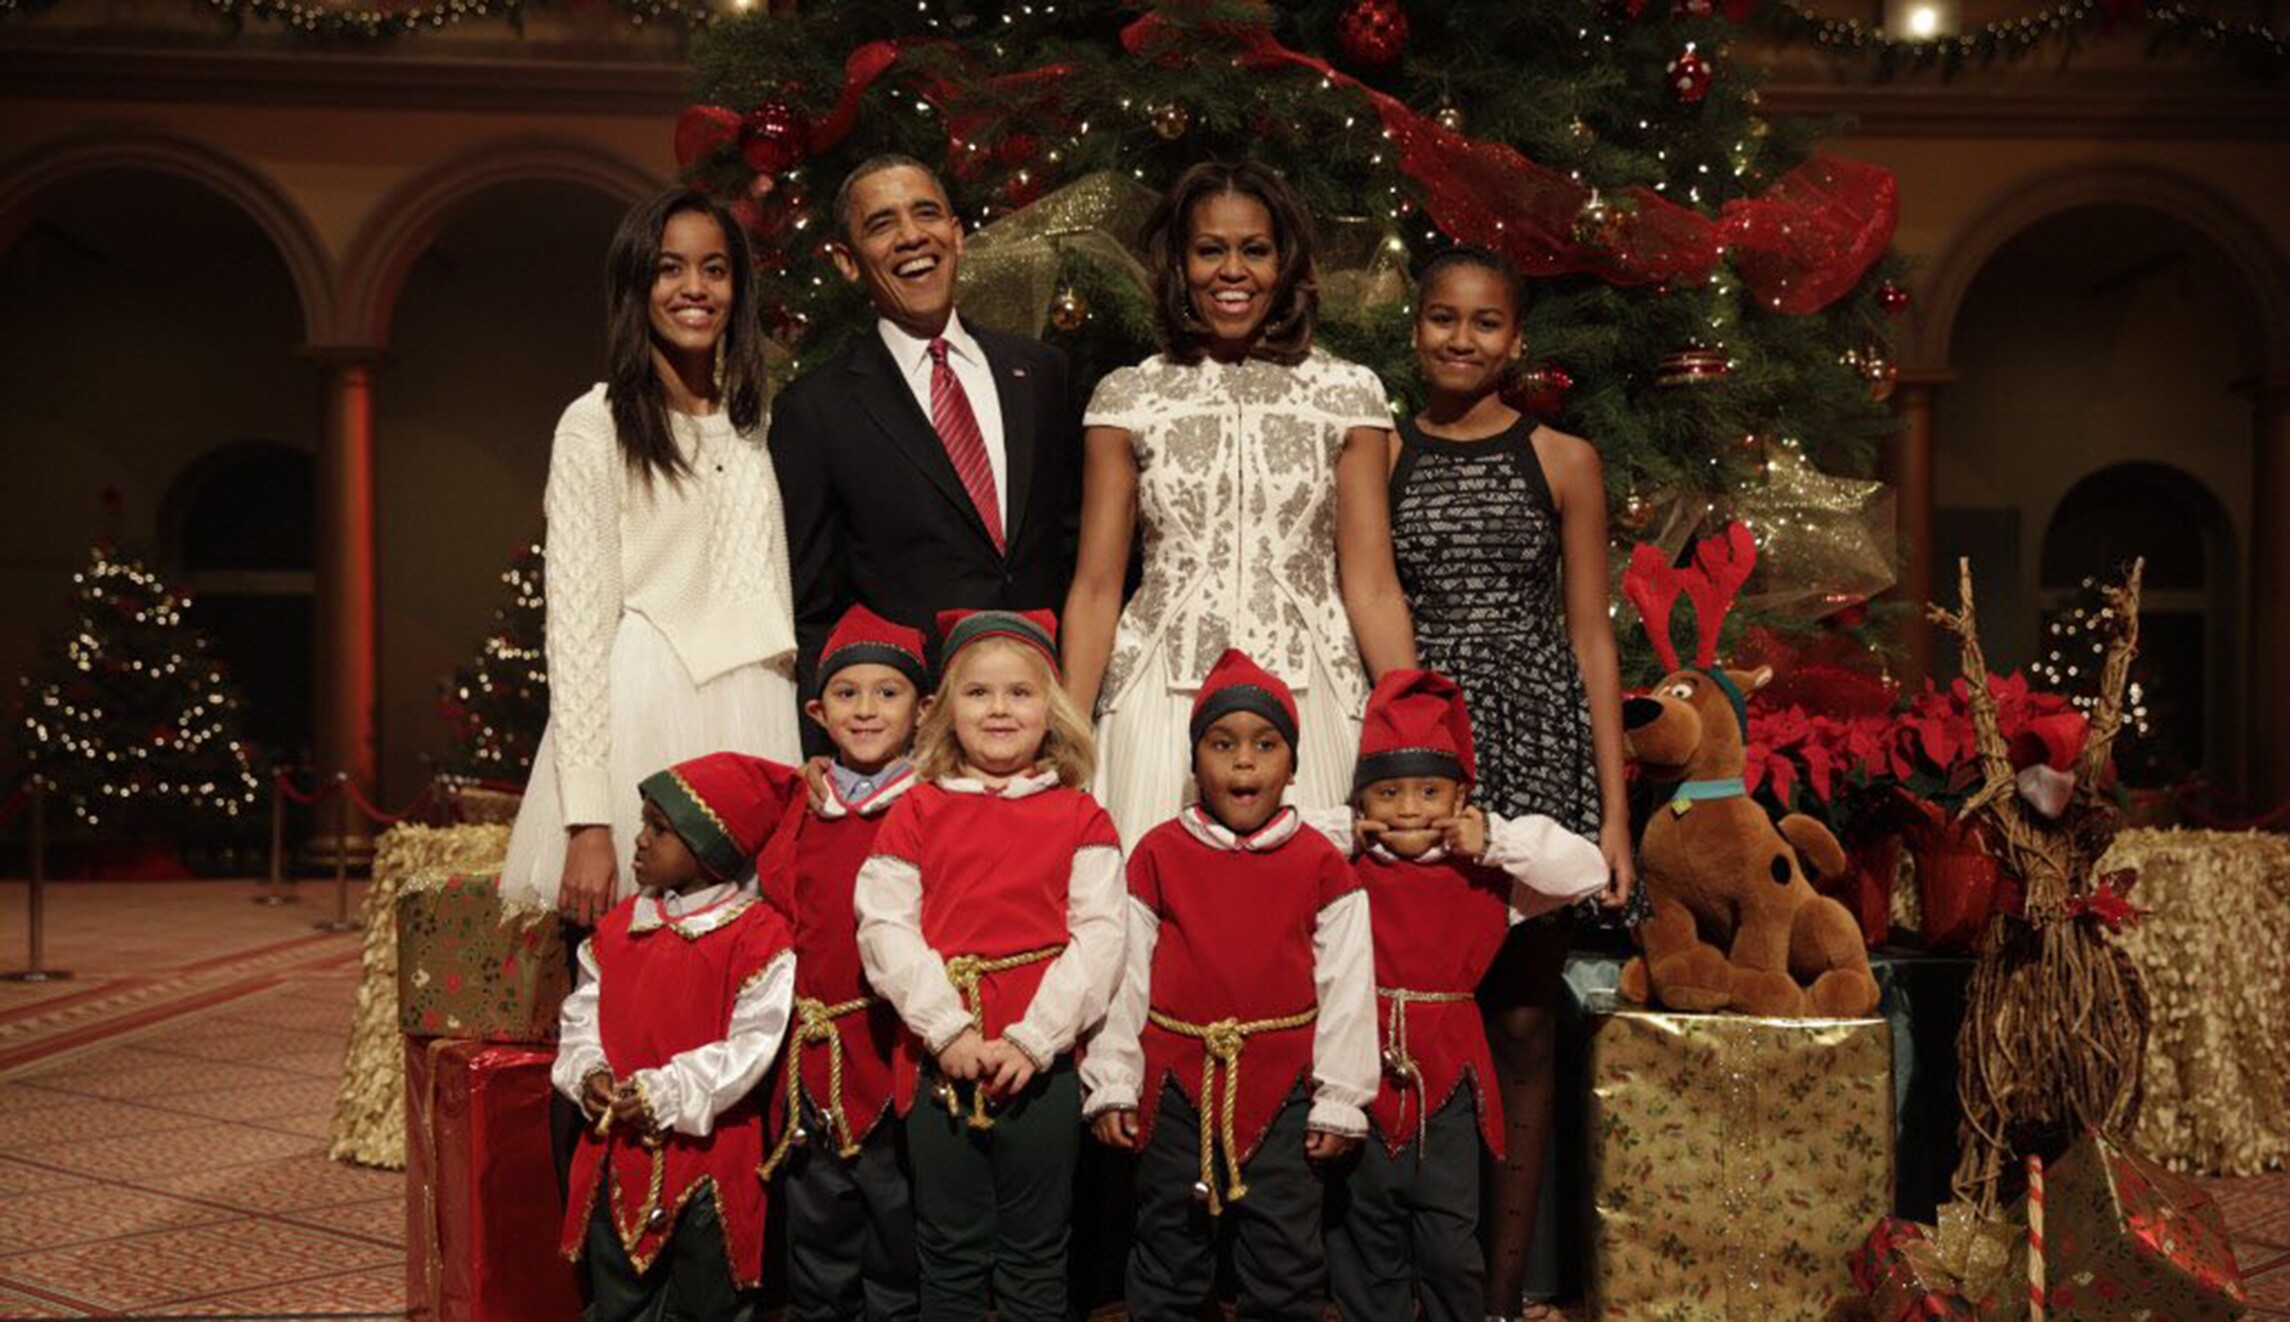 Obama sends holiday message: \'On behalf of the Obama family, Merry ...